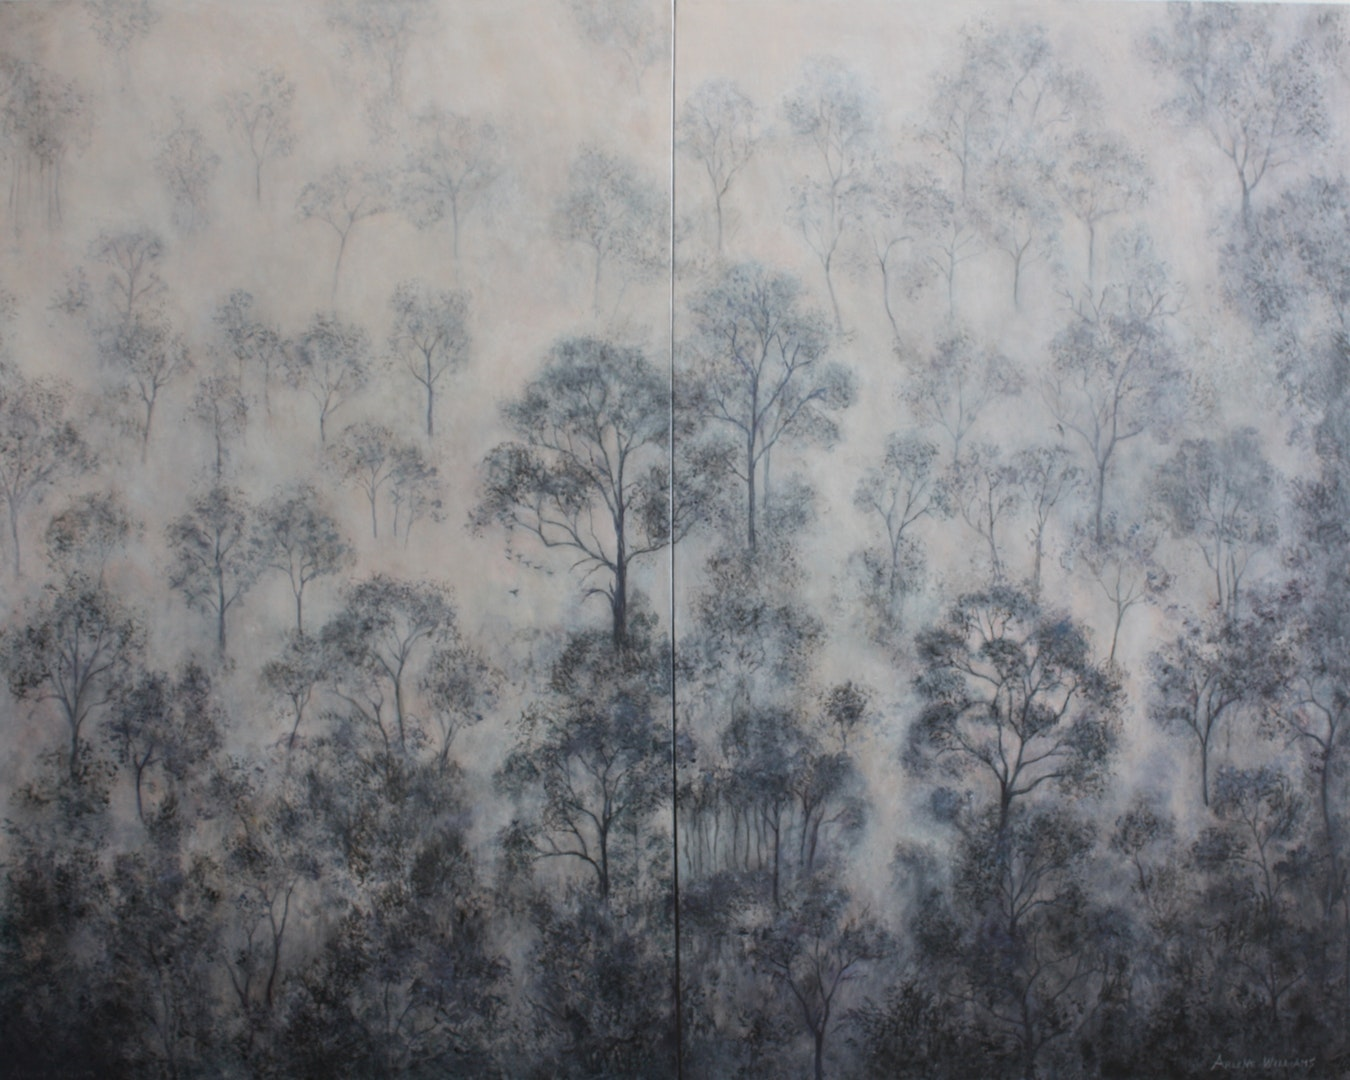 Arlene Williams  Cathedral Forest (Diptych)  Acrylic, 122 x 152 x 2 cm  https://arlenewilliams.myportfolio.com/